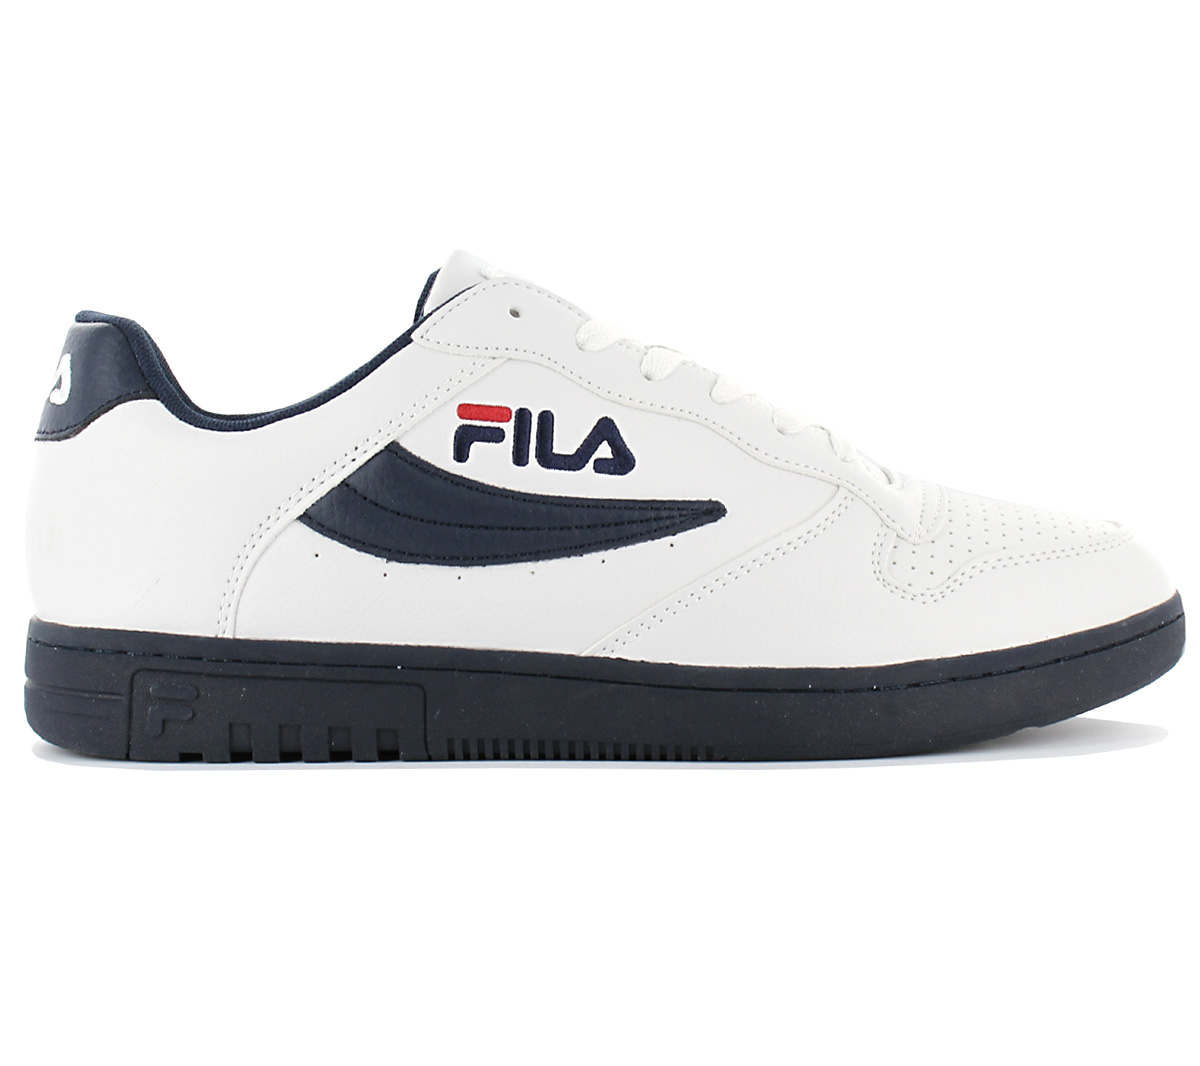 1a64d44ff869 Fila FX-100 Low Mens Sneaker White Shoes Trainers Sport Shoes ...